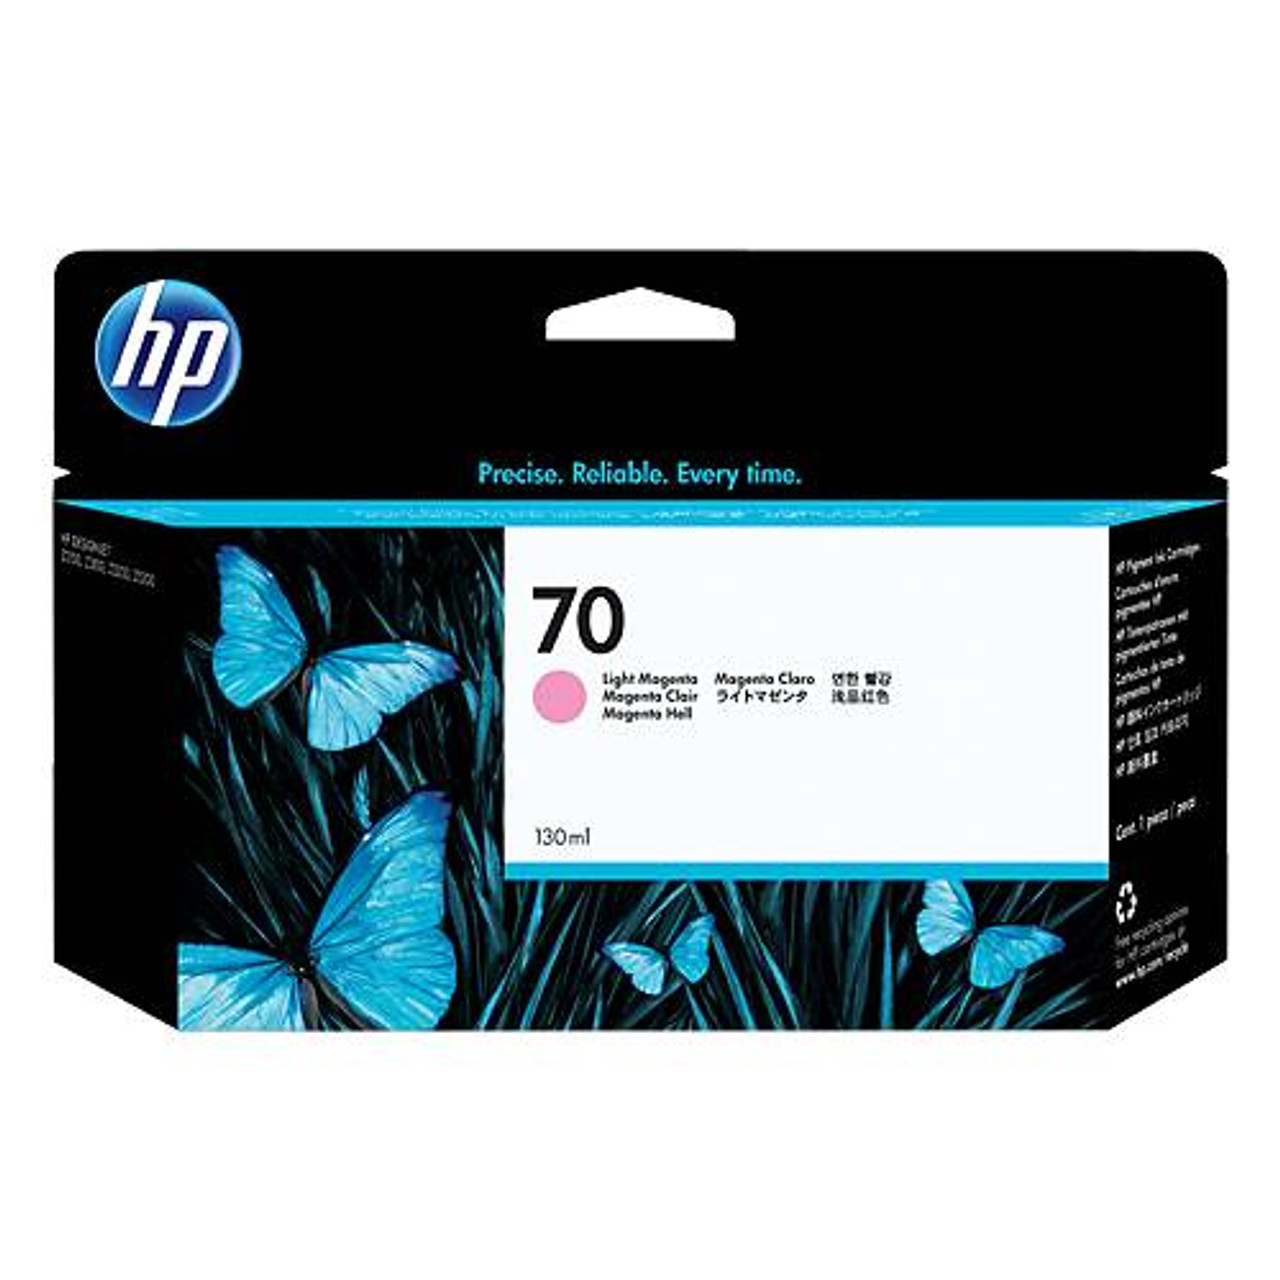 Image for HP 70 130ml Light Magenta Ink Cartridge (C9455A) CX Computer Superstore